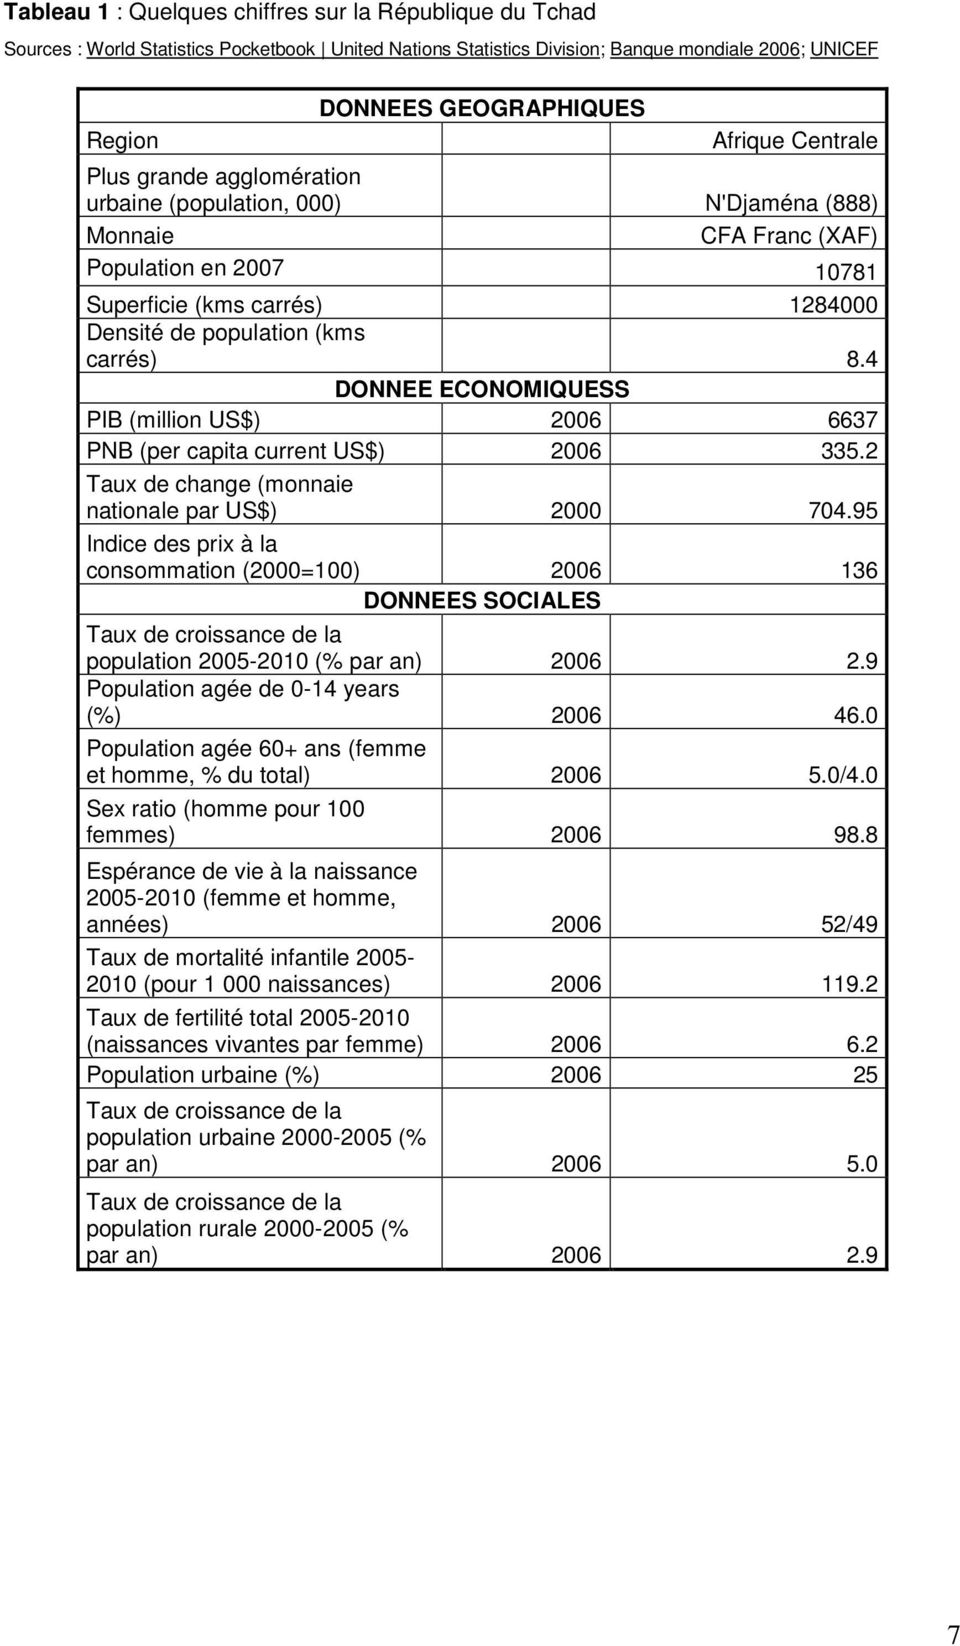 4 DONNEE ECONOMIQUESS PIB (million US$) 2006 6637 PNB (per capita current US$) 2006 335.2 Taux de change (monnaie nationale par US$) 2000 704.